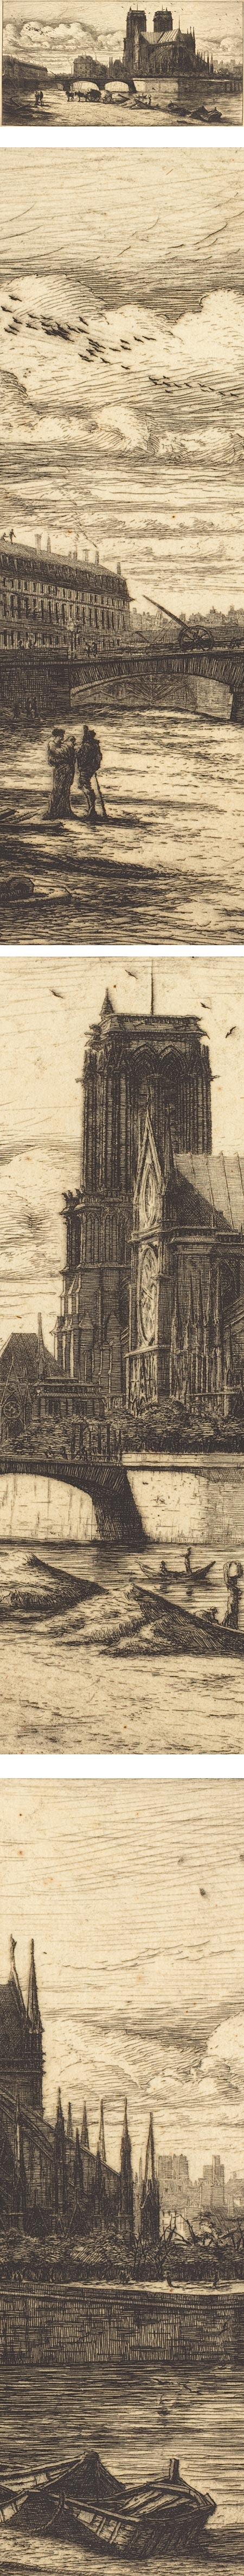 L'abside de Notre-Dame de Paris</a></em> (The Apsis of the Cathedral of Notre Dame, Paris), Charles Meryon, etching&#8221;  /><br /> <em><a href=